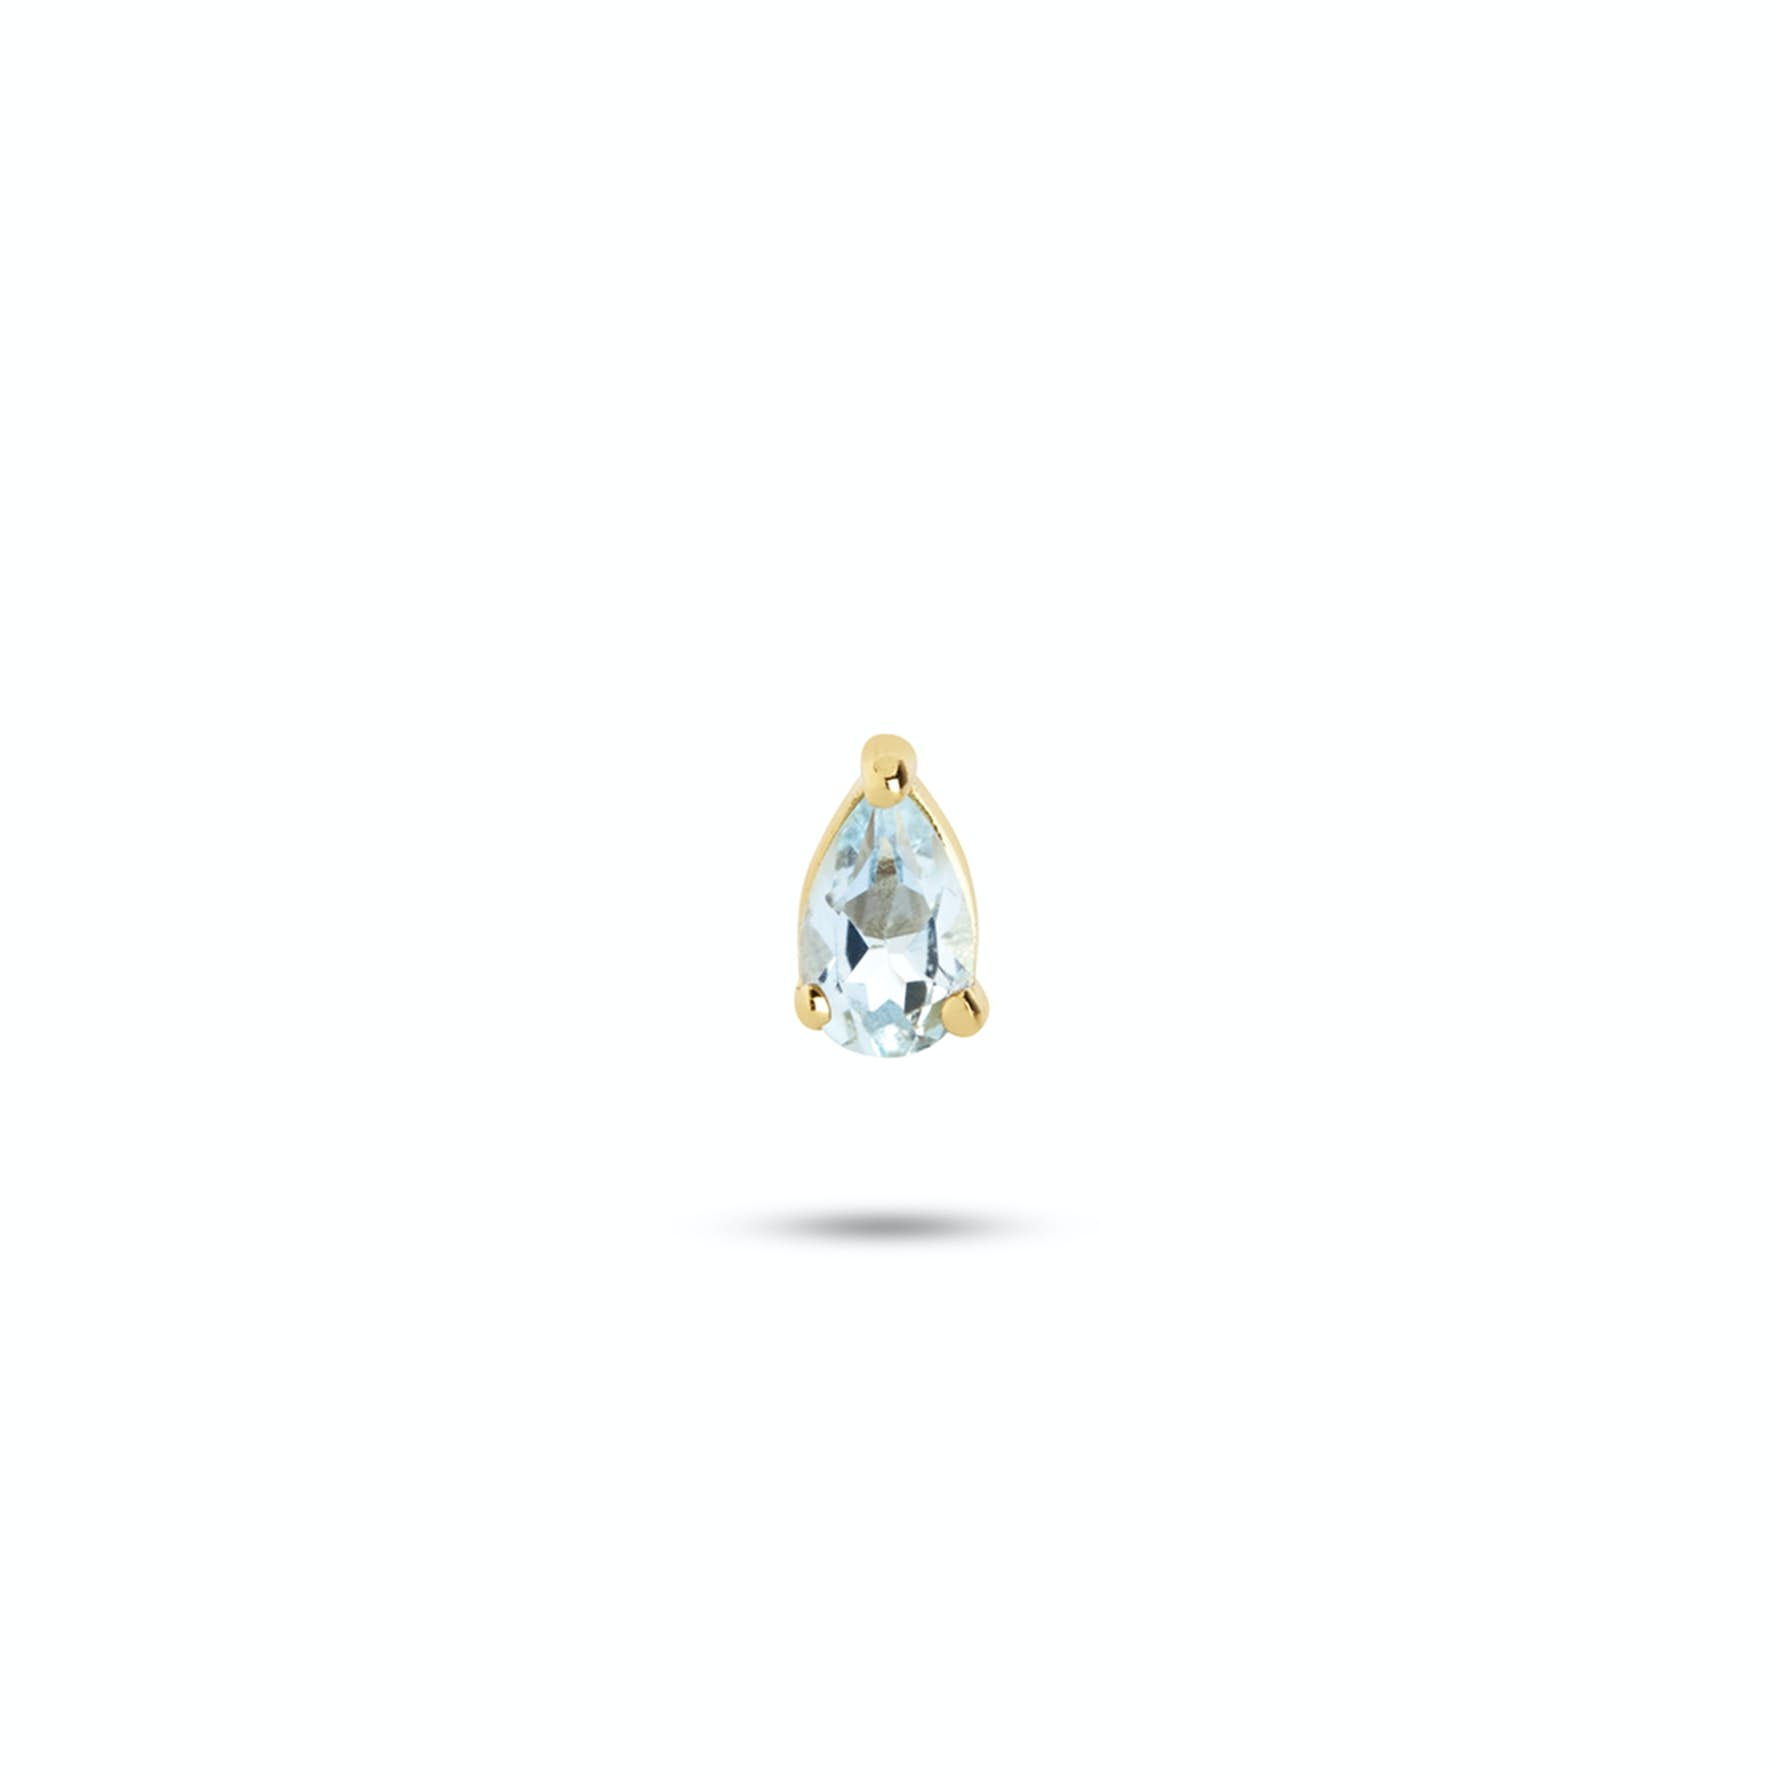 Gem Candy Earstick Aqua from Carré in Goldplated-Silver Sterling 925||Blank